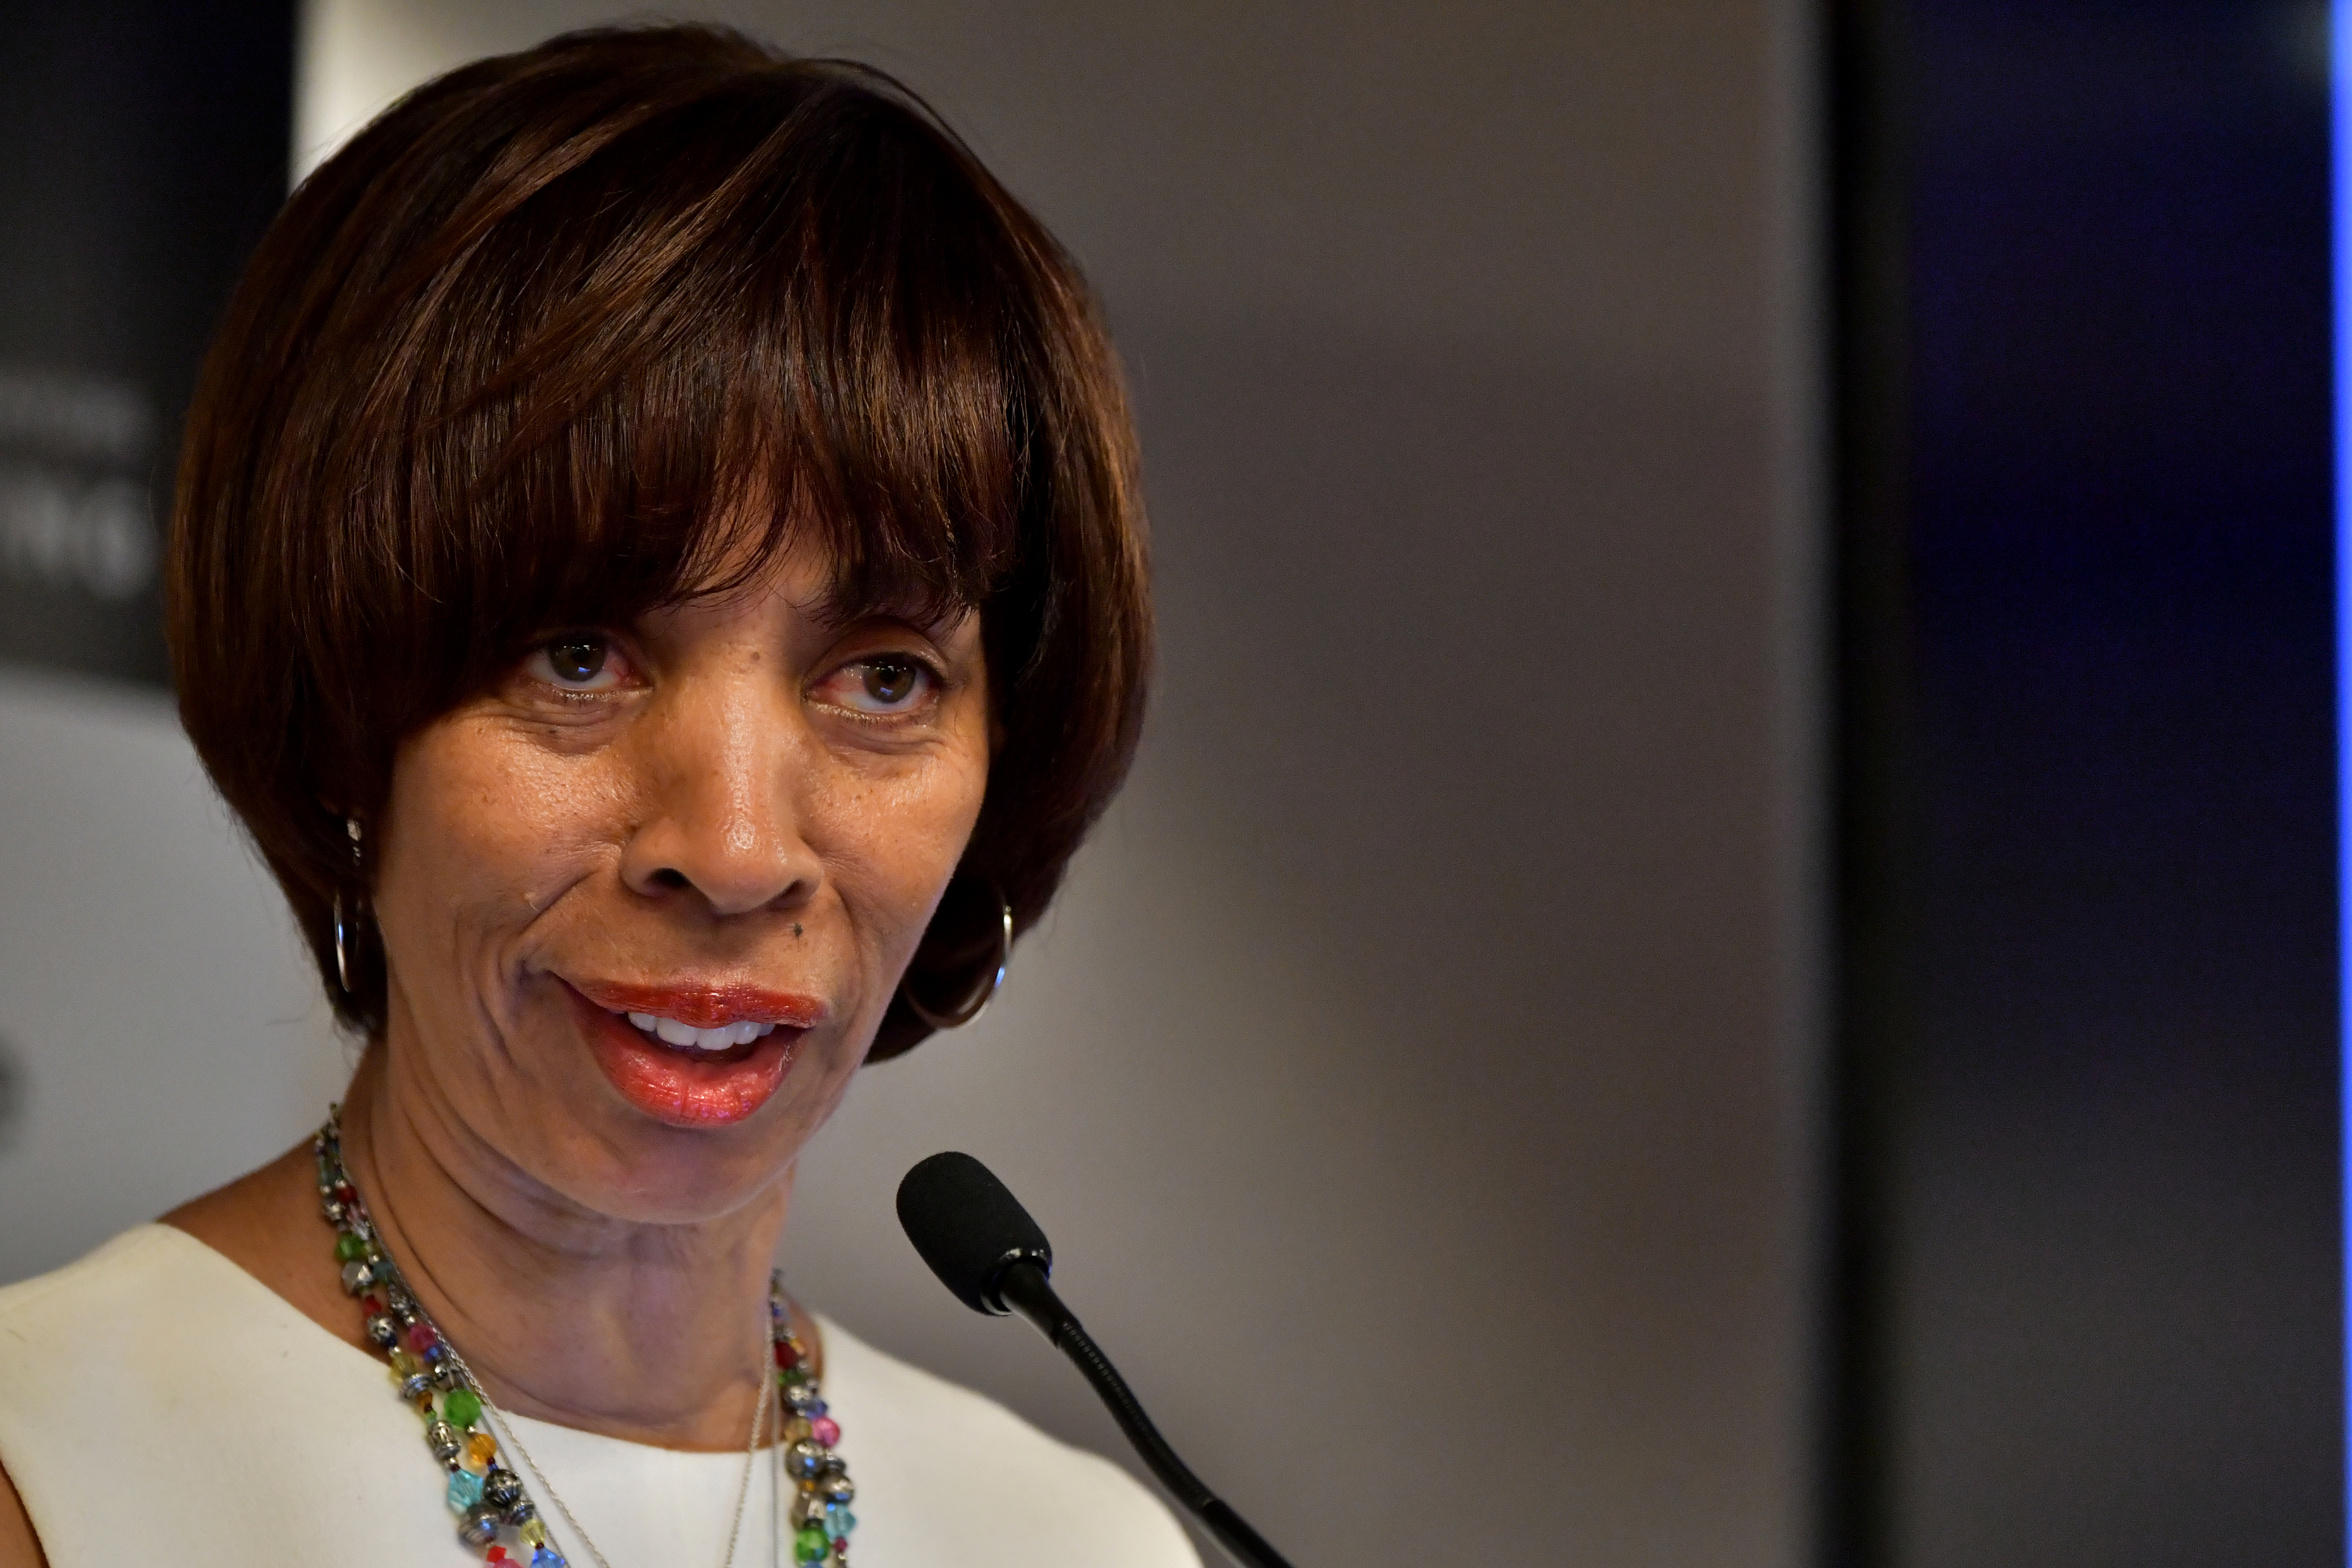 Baltimore Mayor Catherine Pugh speaks at a session during the U.S. Conference of Mayors on June 8, 2018 in Boston, Massachusetts.